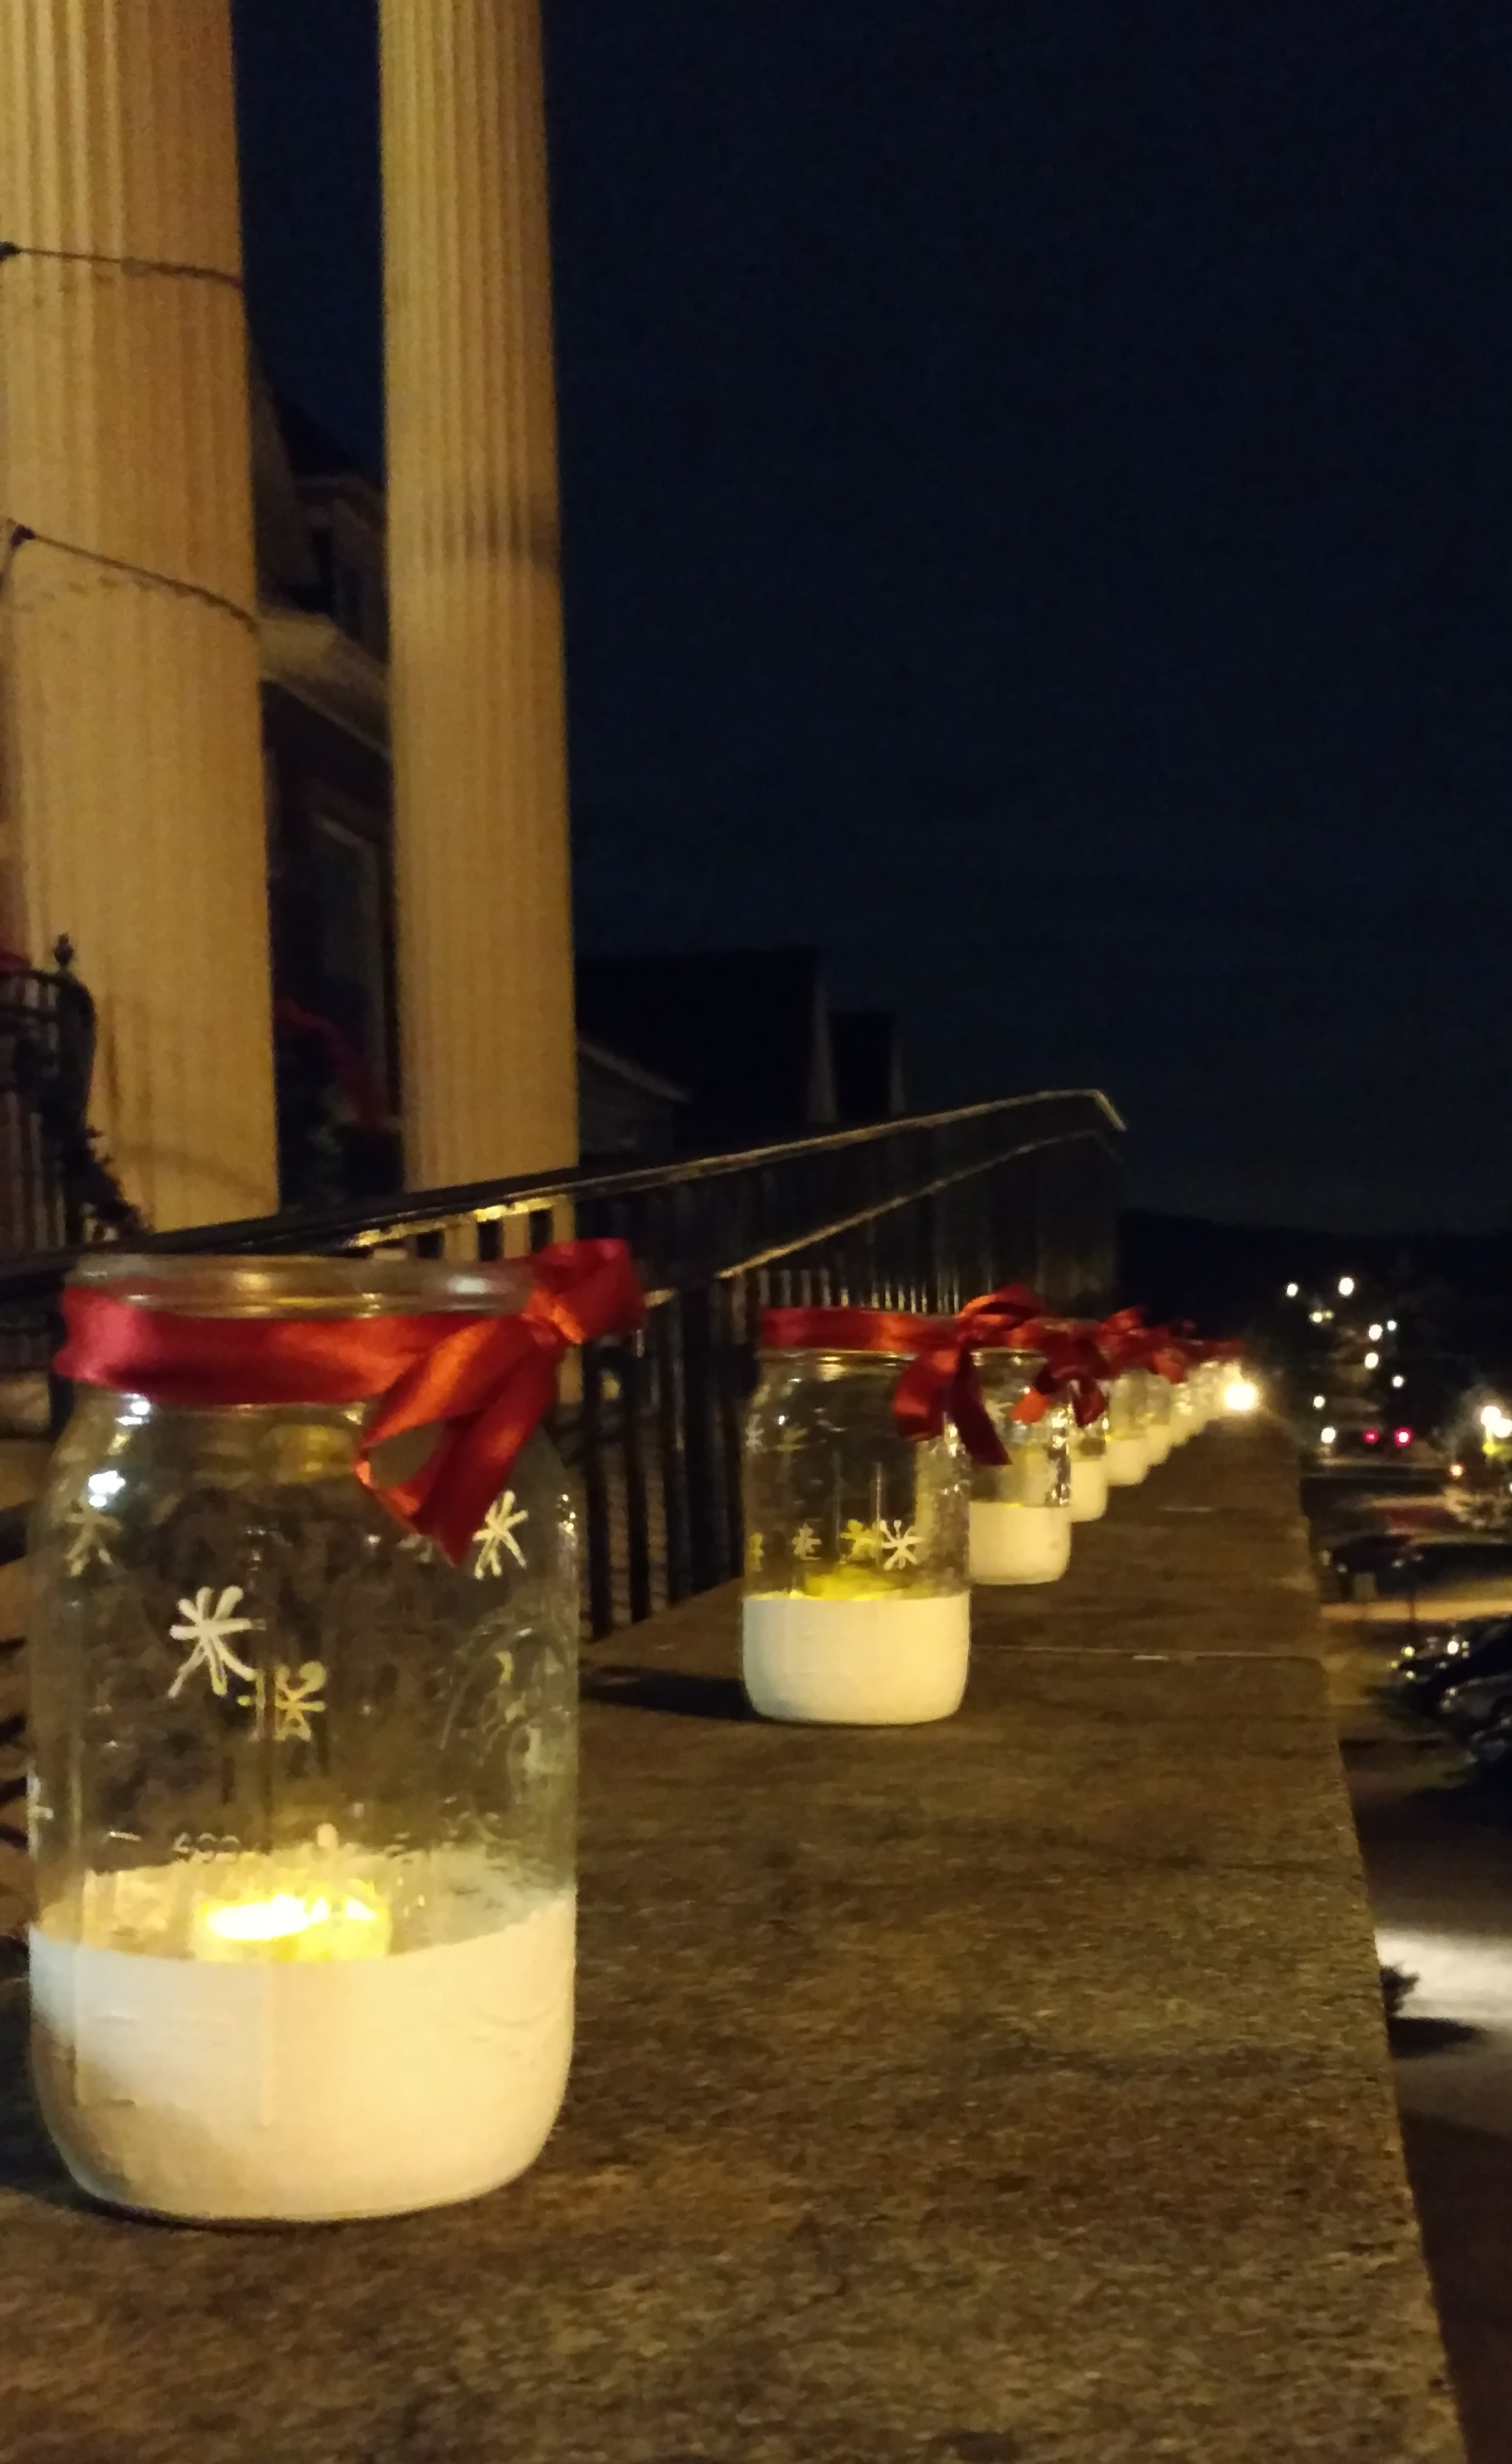 Candles in jars